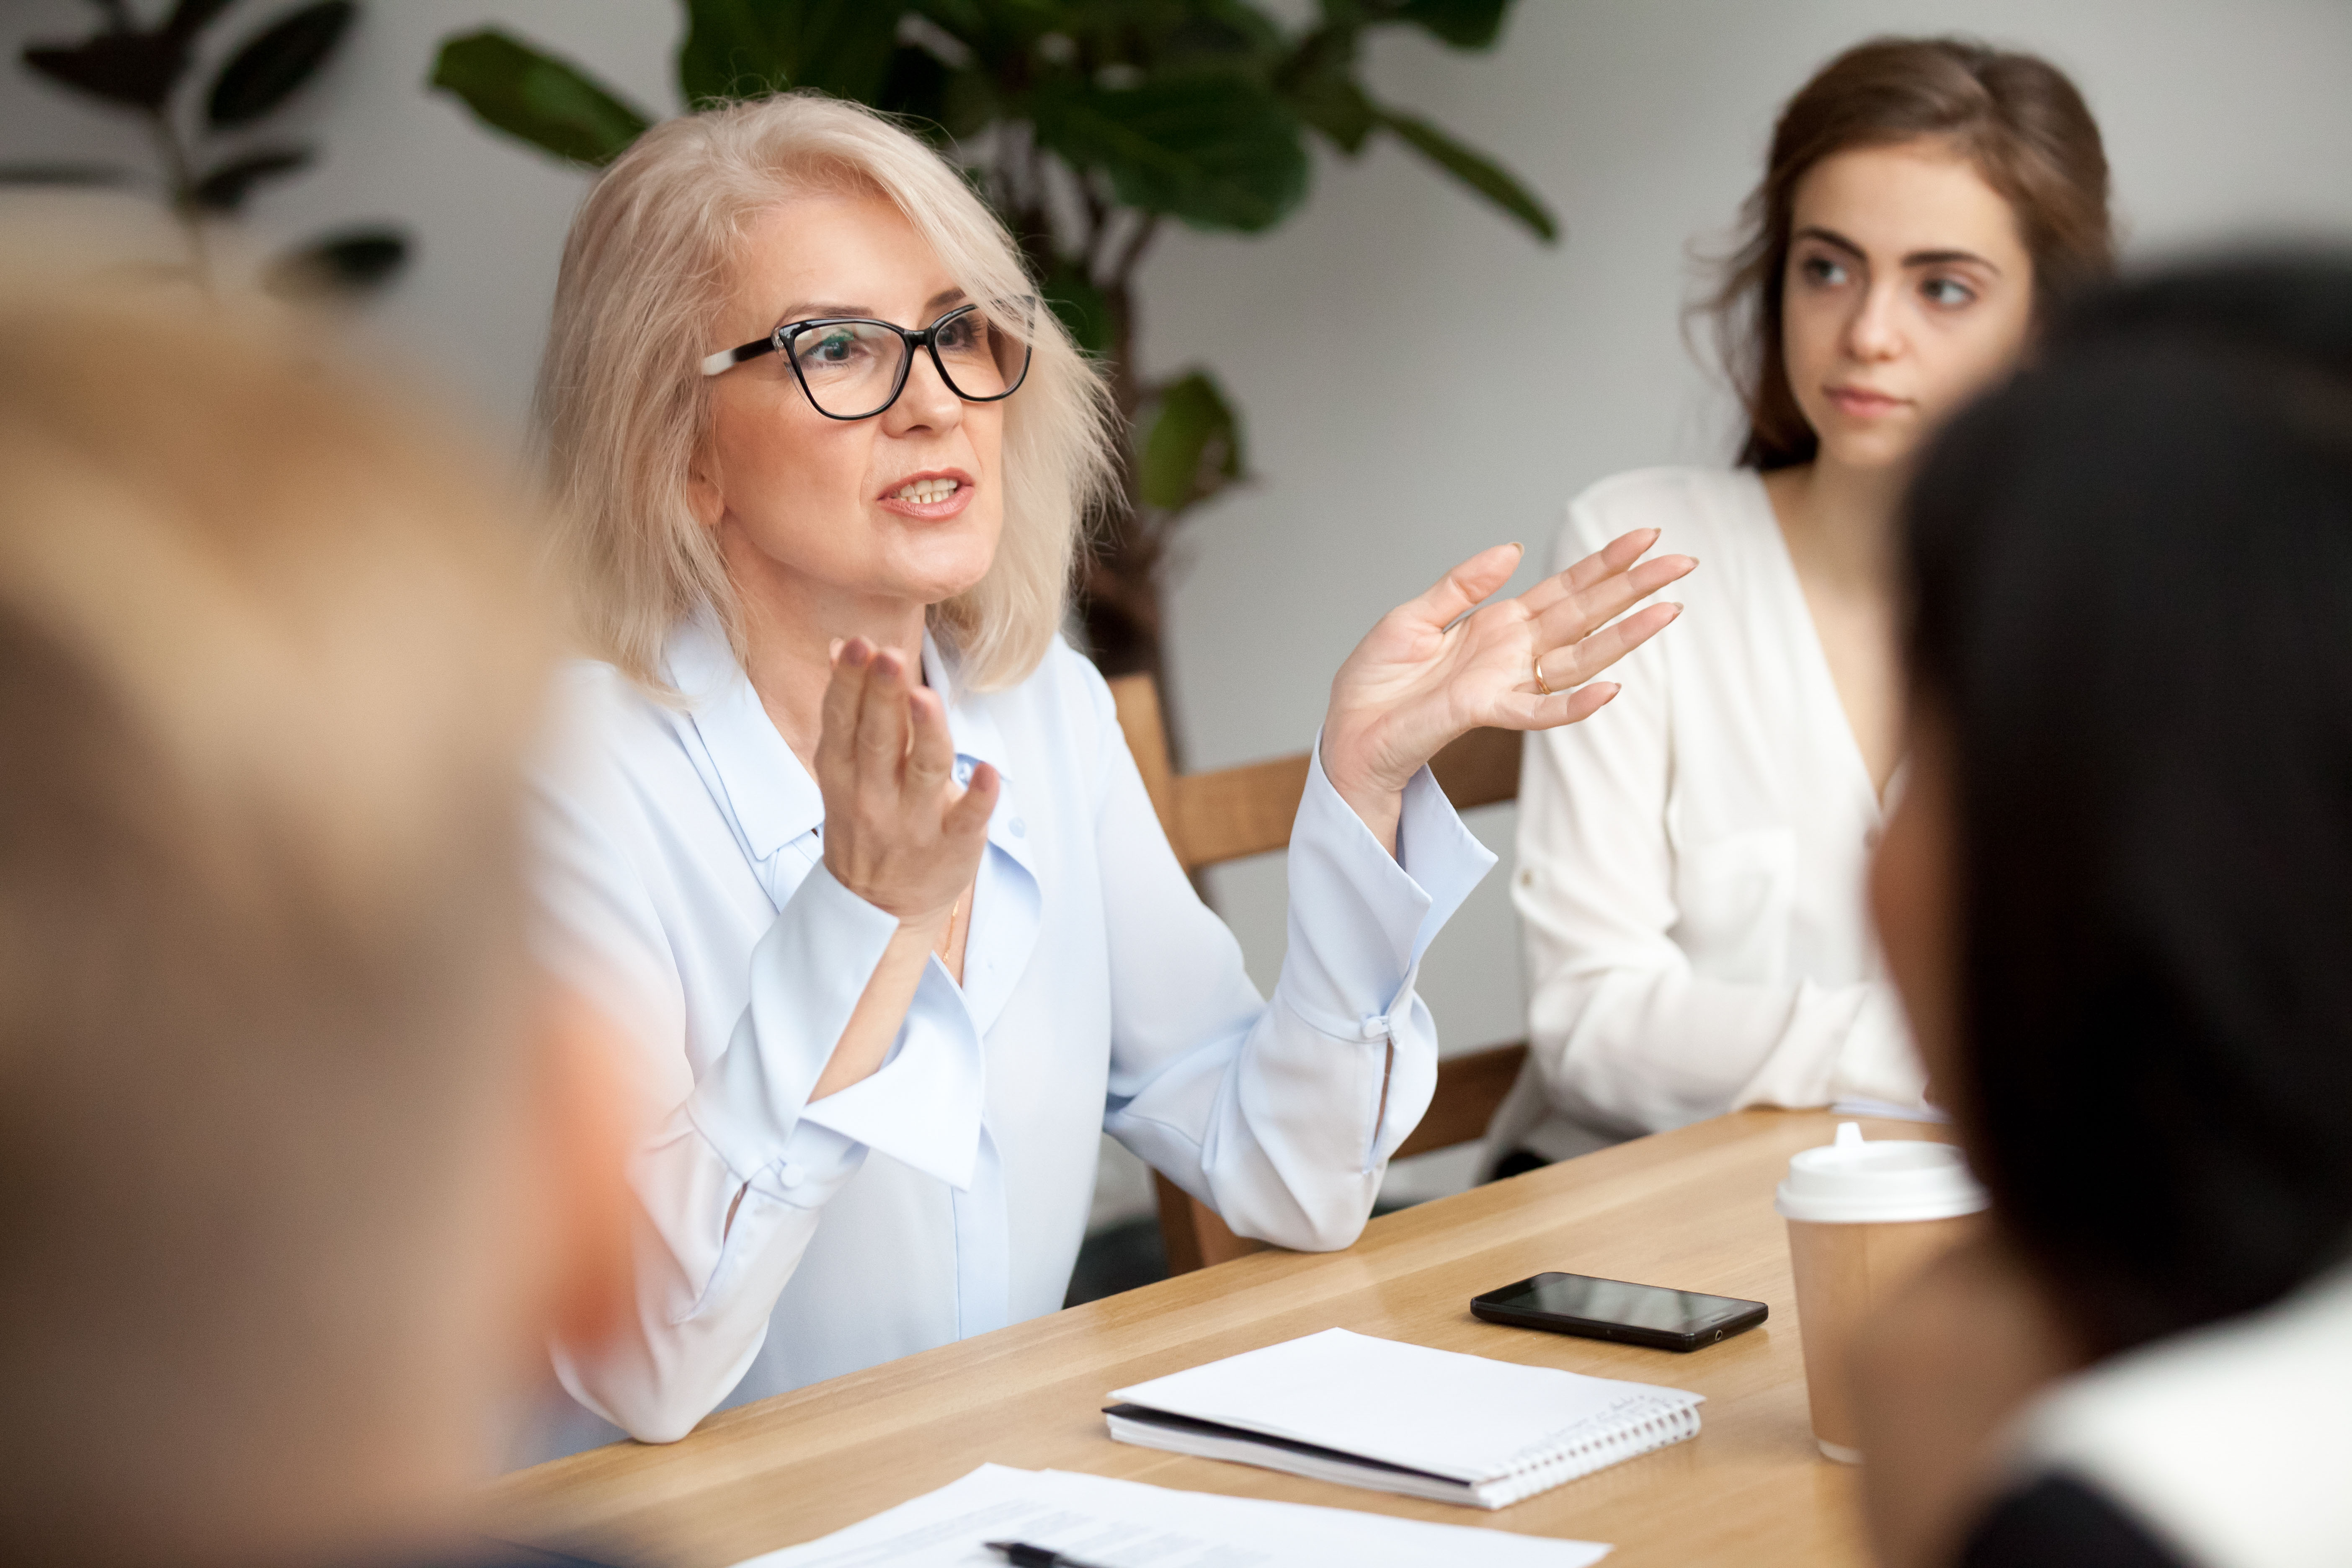 woman with glasses explaining something in a meeting